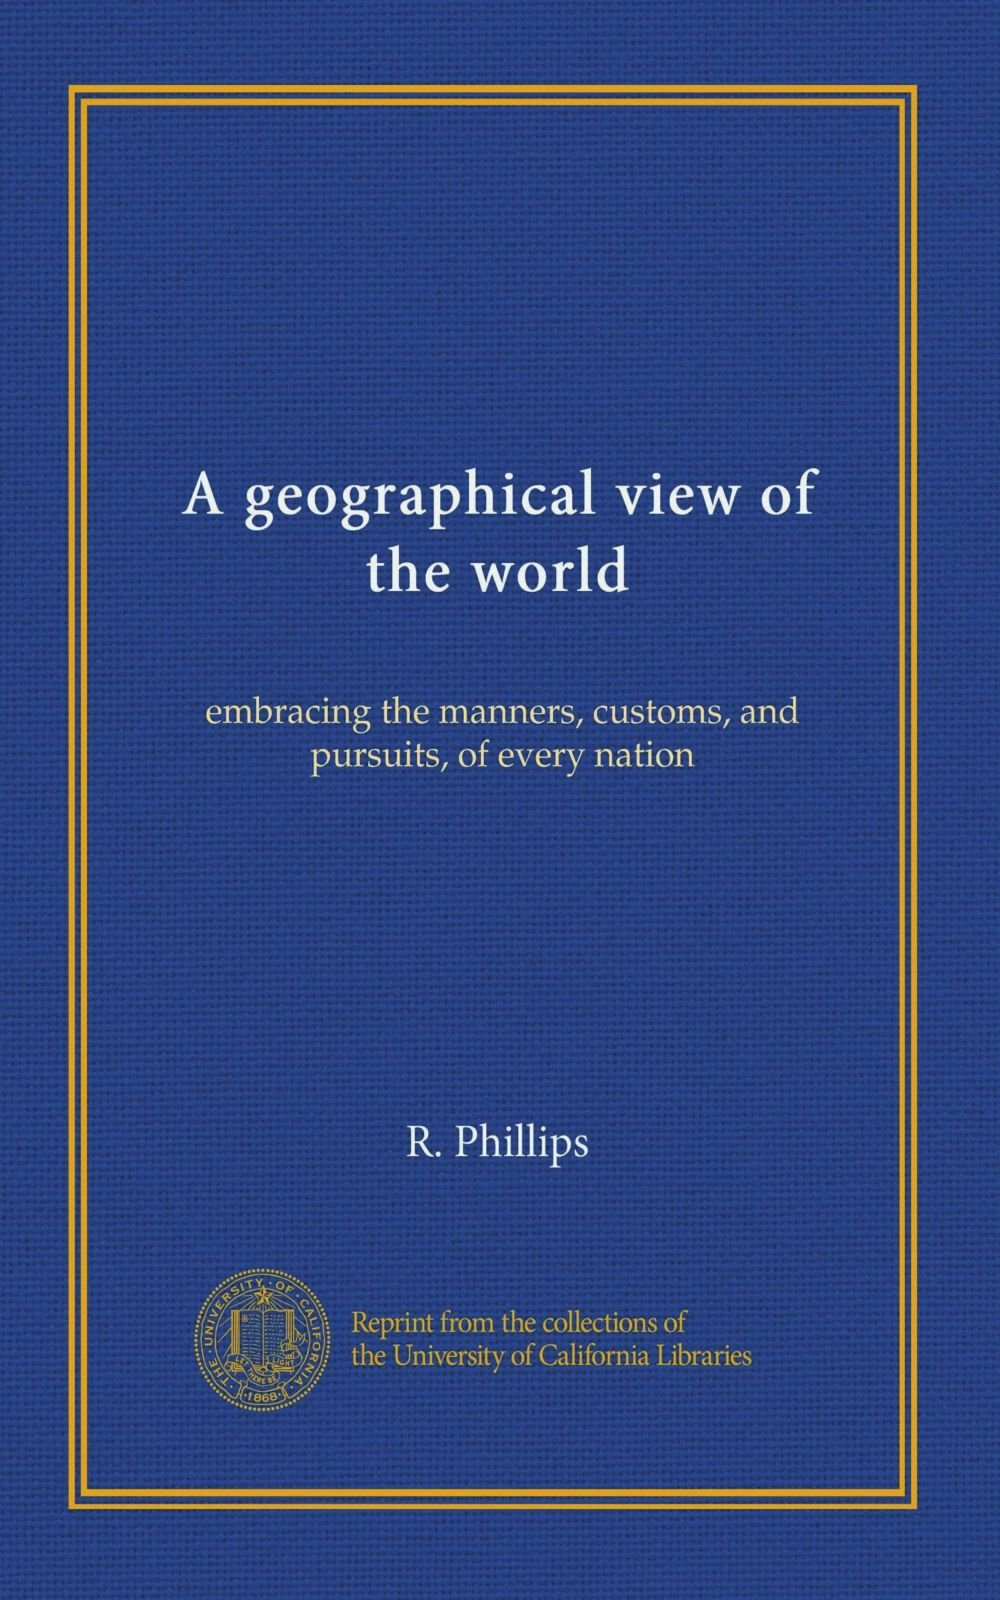 A geographical view of the world: embracing the manners, customs, and pursuits, of every nation ebook